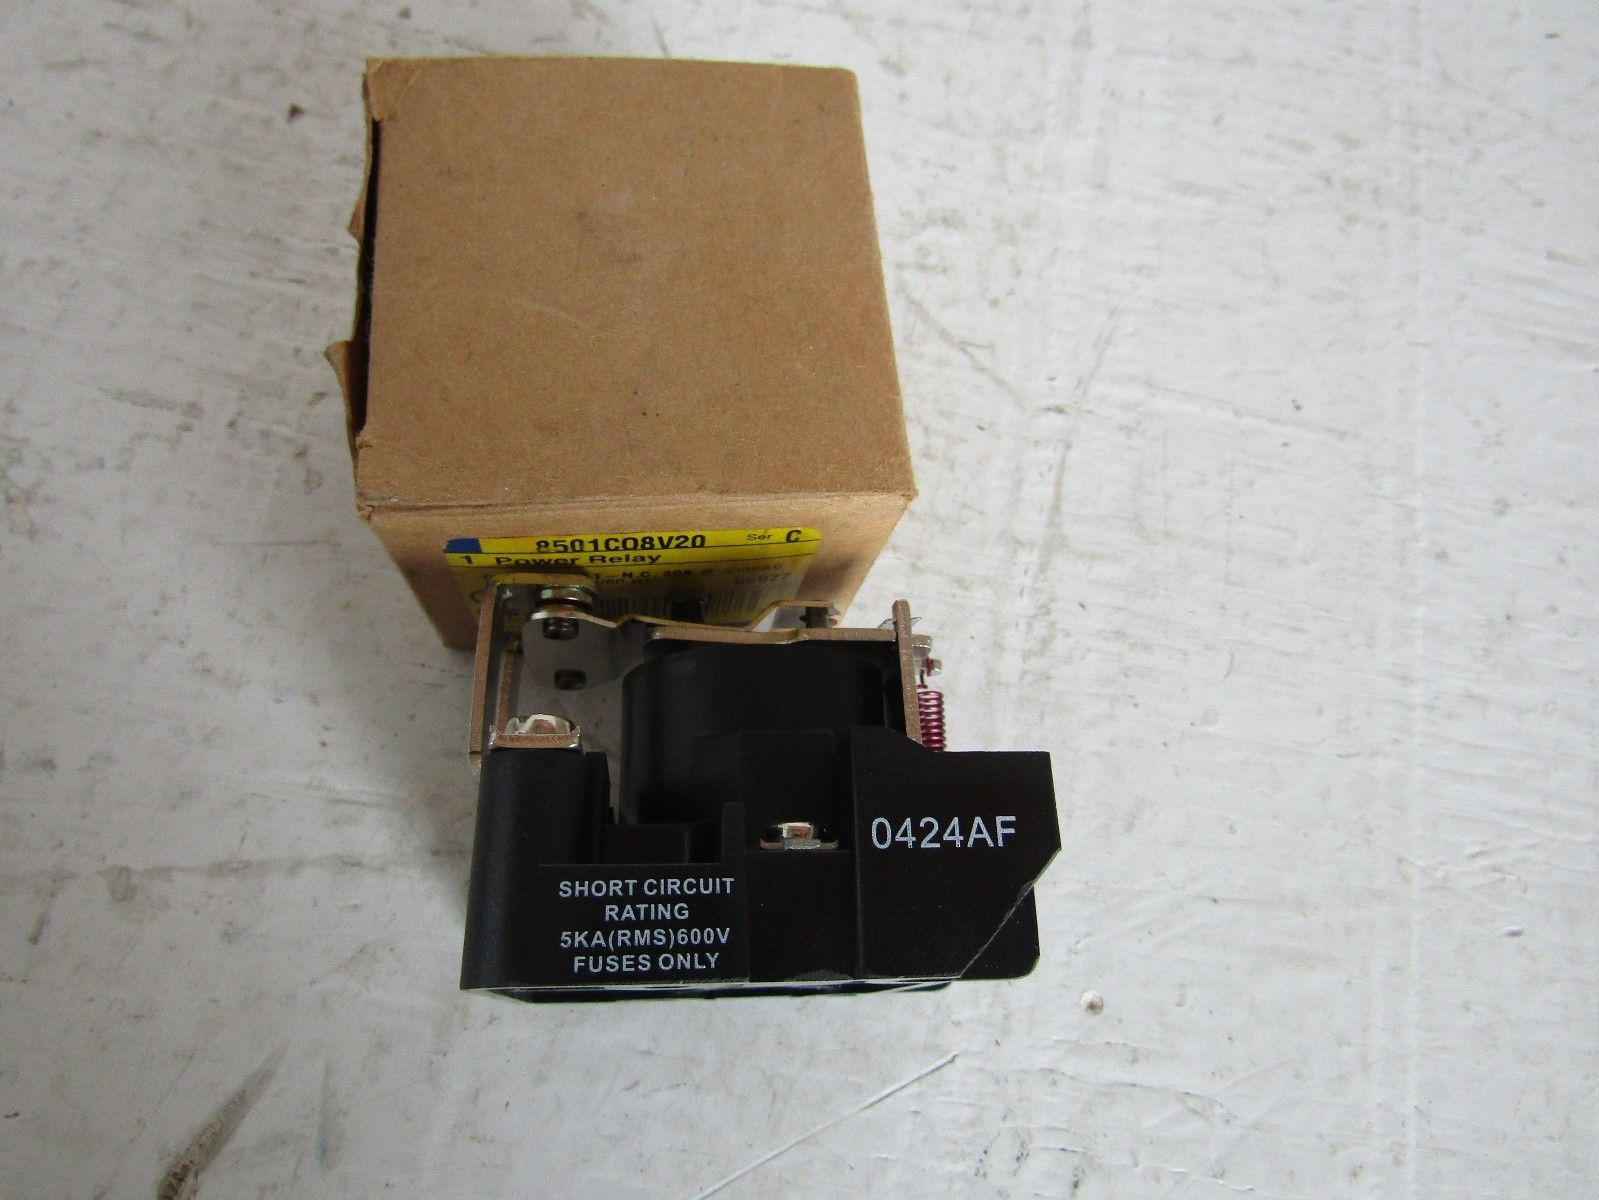 New Square D 8501c08v20 Spst Power Relay Powered Electric Supply Rating